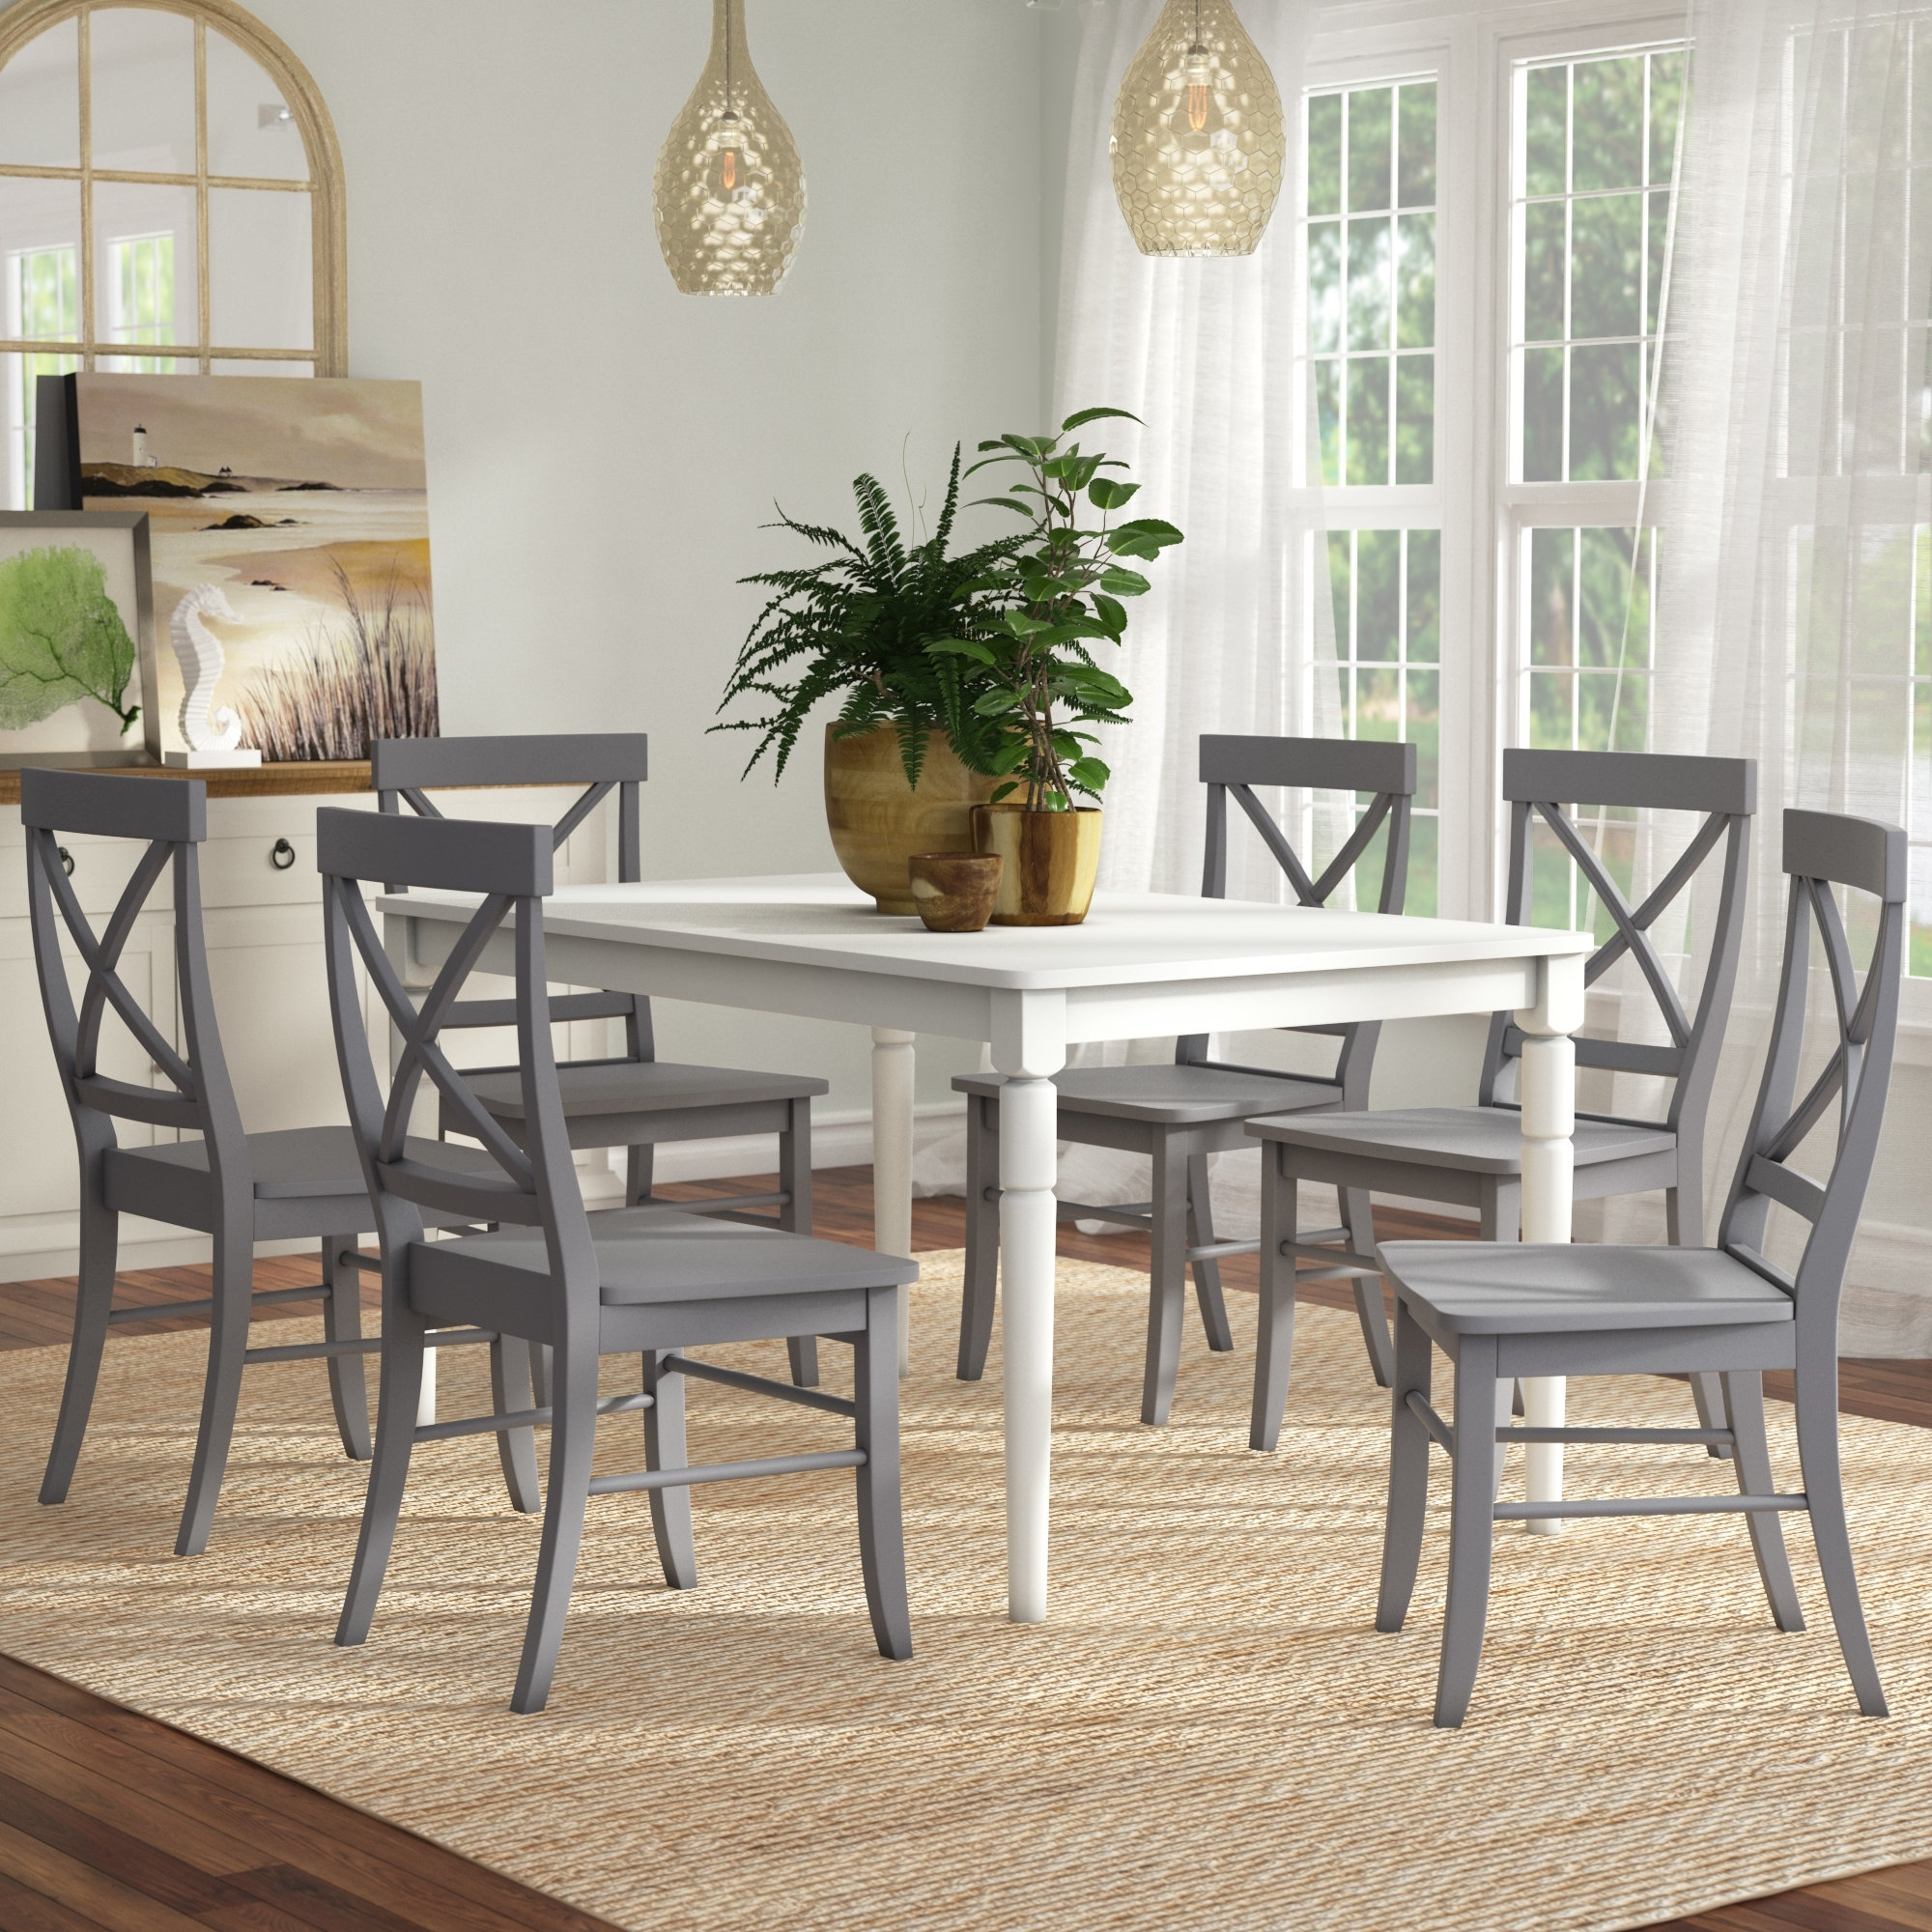 Beachcrest Home Brookwood 7 Piece Dining Set & Reviews | Wayfair Within Most Up To Date Candice Ii 7 Piece Extension Rectangular Dining Sets With Uph Side Chairs (Image 3 of 20)